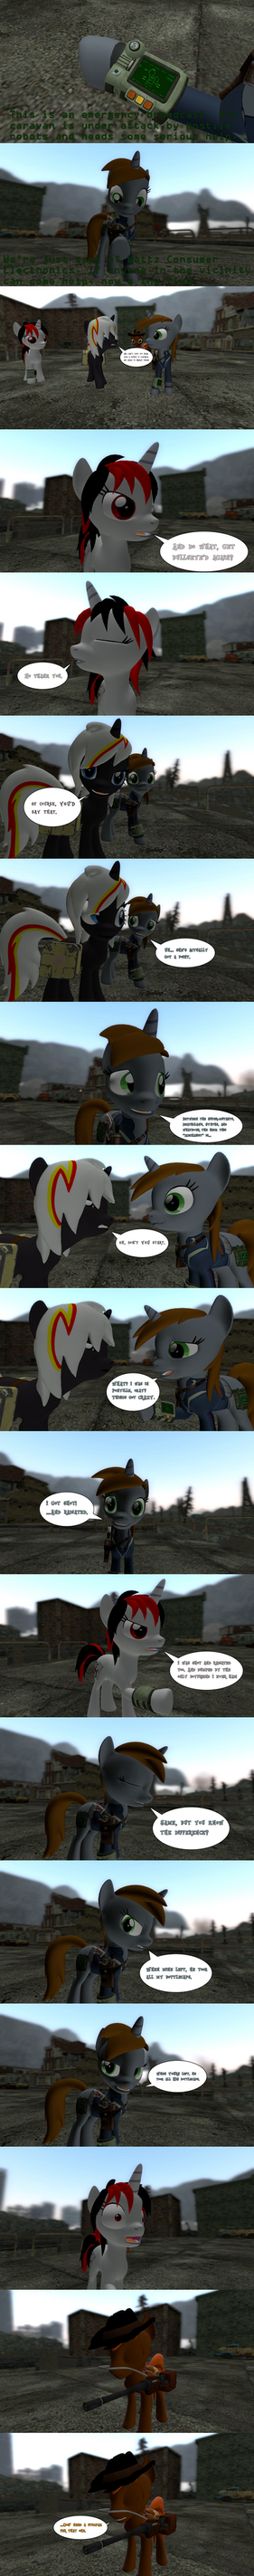 Fallout Equestria: Automatron (Abridged) by Chatterbeast